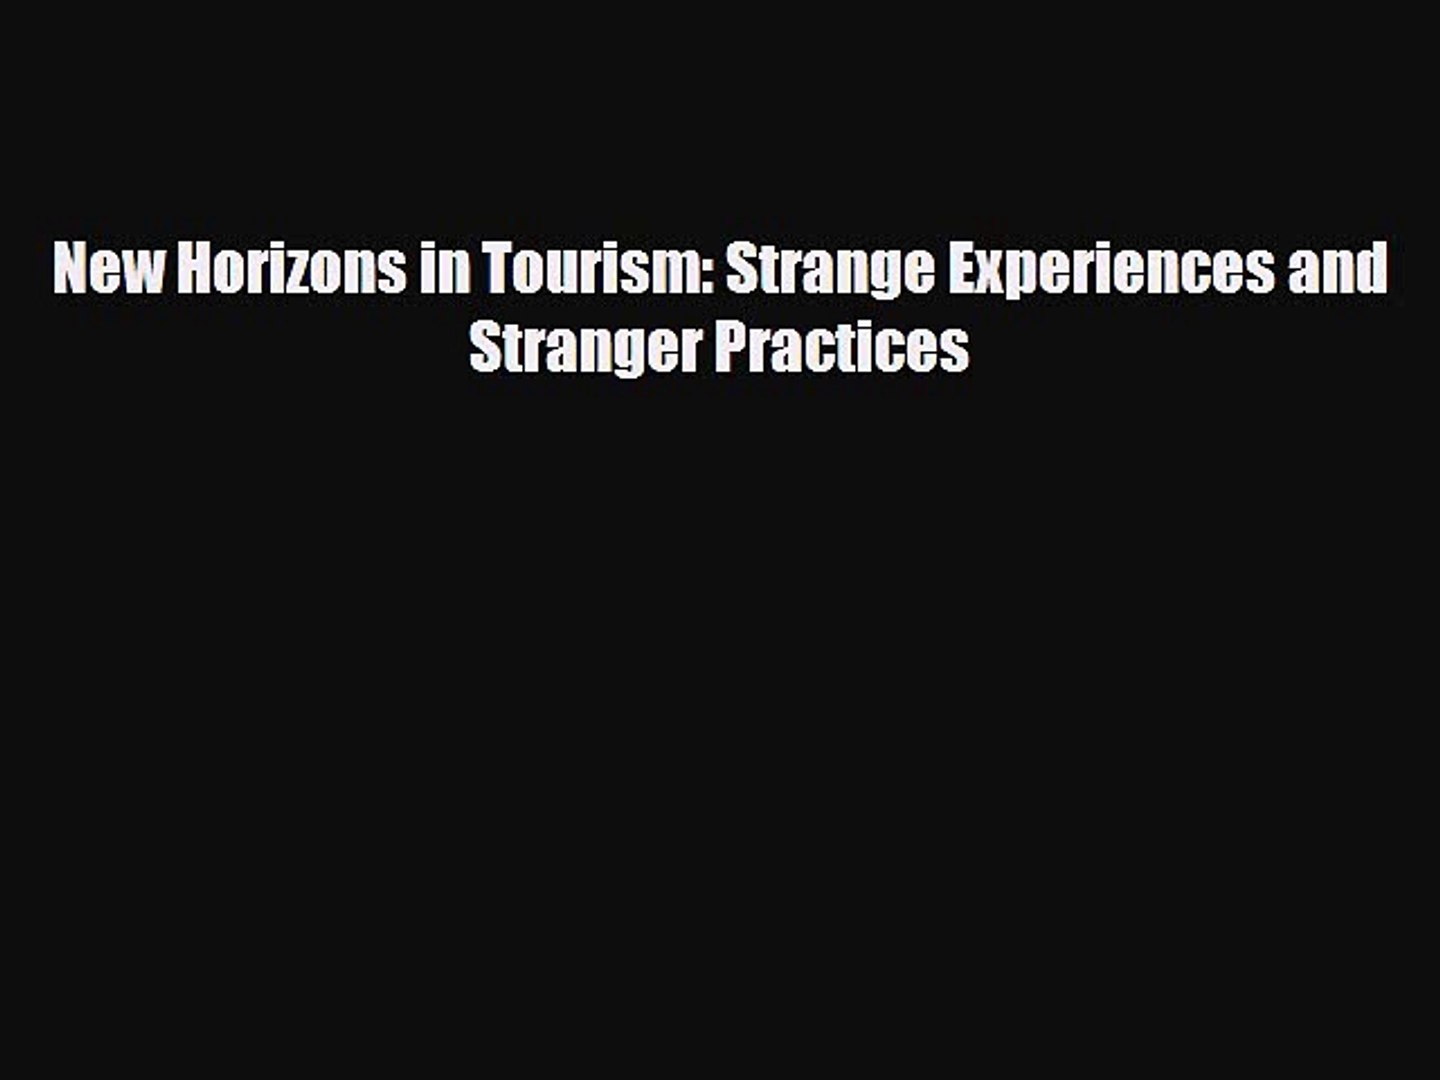 New horizons in tourism: strange experiences and stranger practices